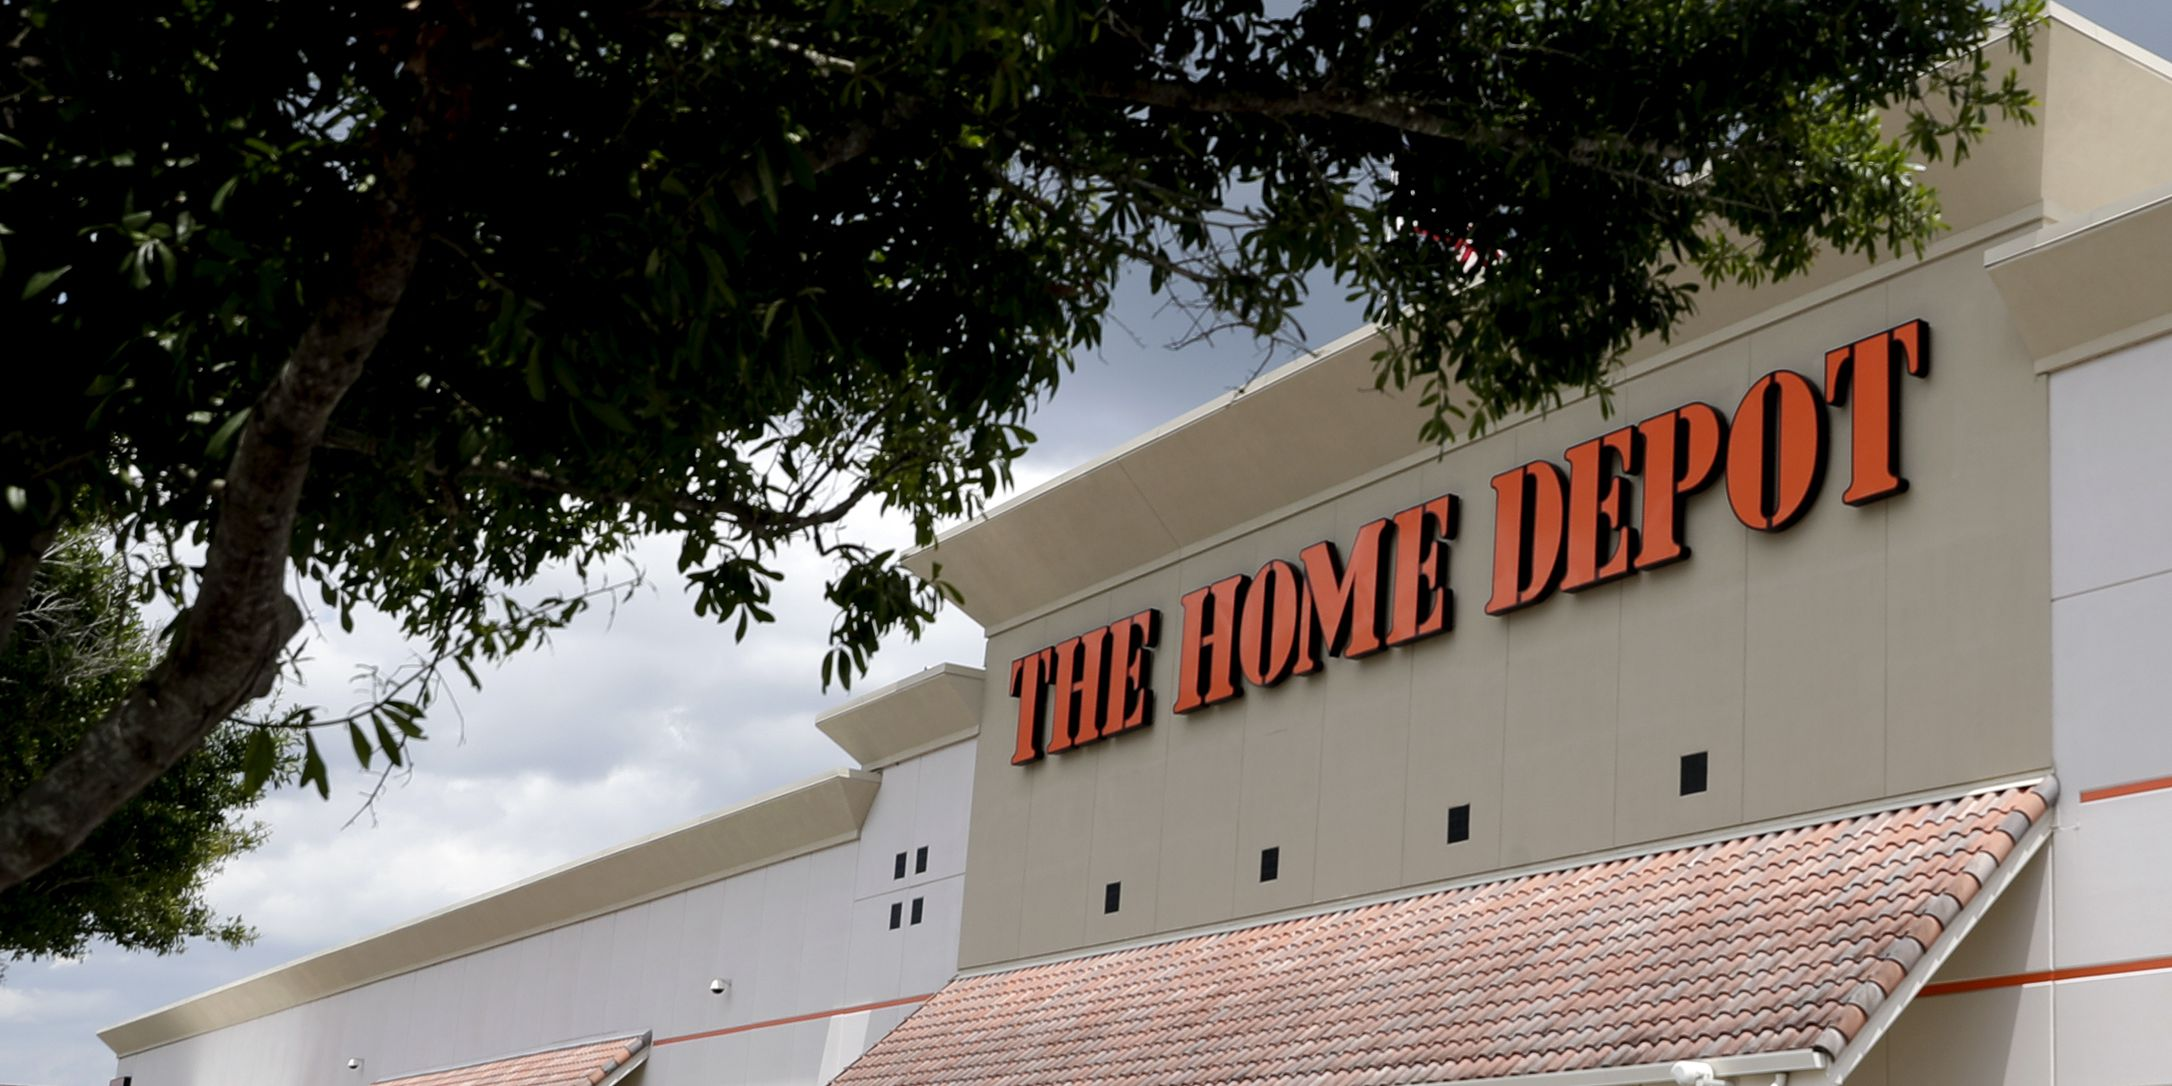 Home Depot bomb threat was actually just guy in bathroom joking he was 'fixin' to blow it up'